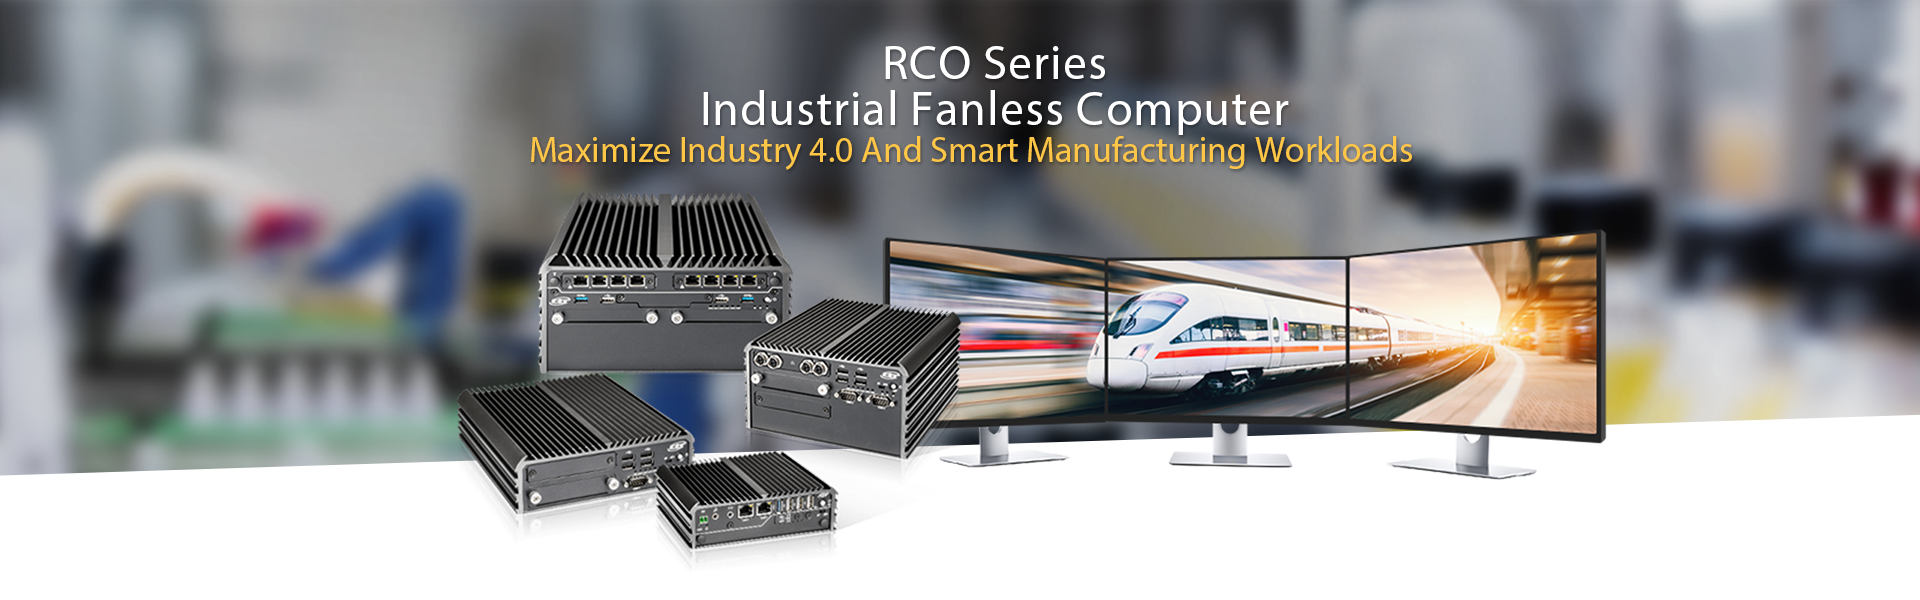 RCO Series Industrial Fanless Computer